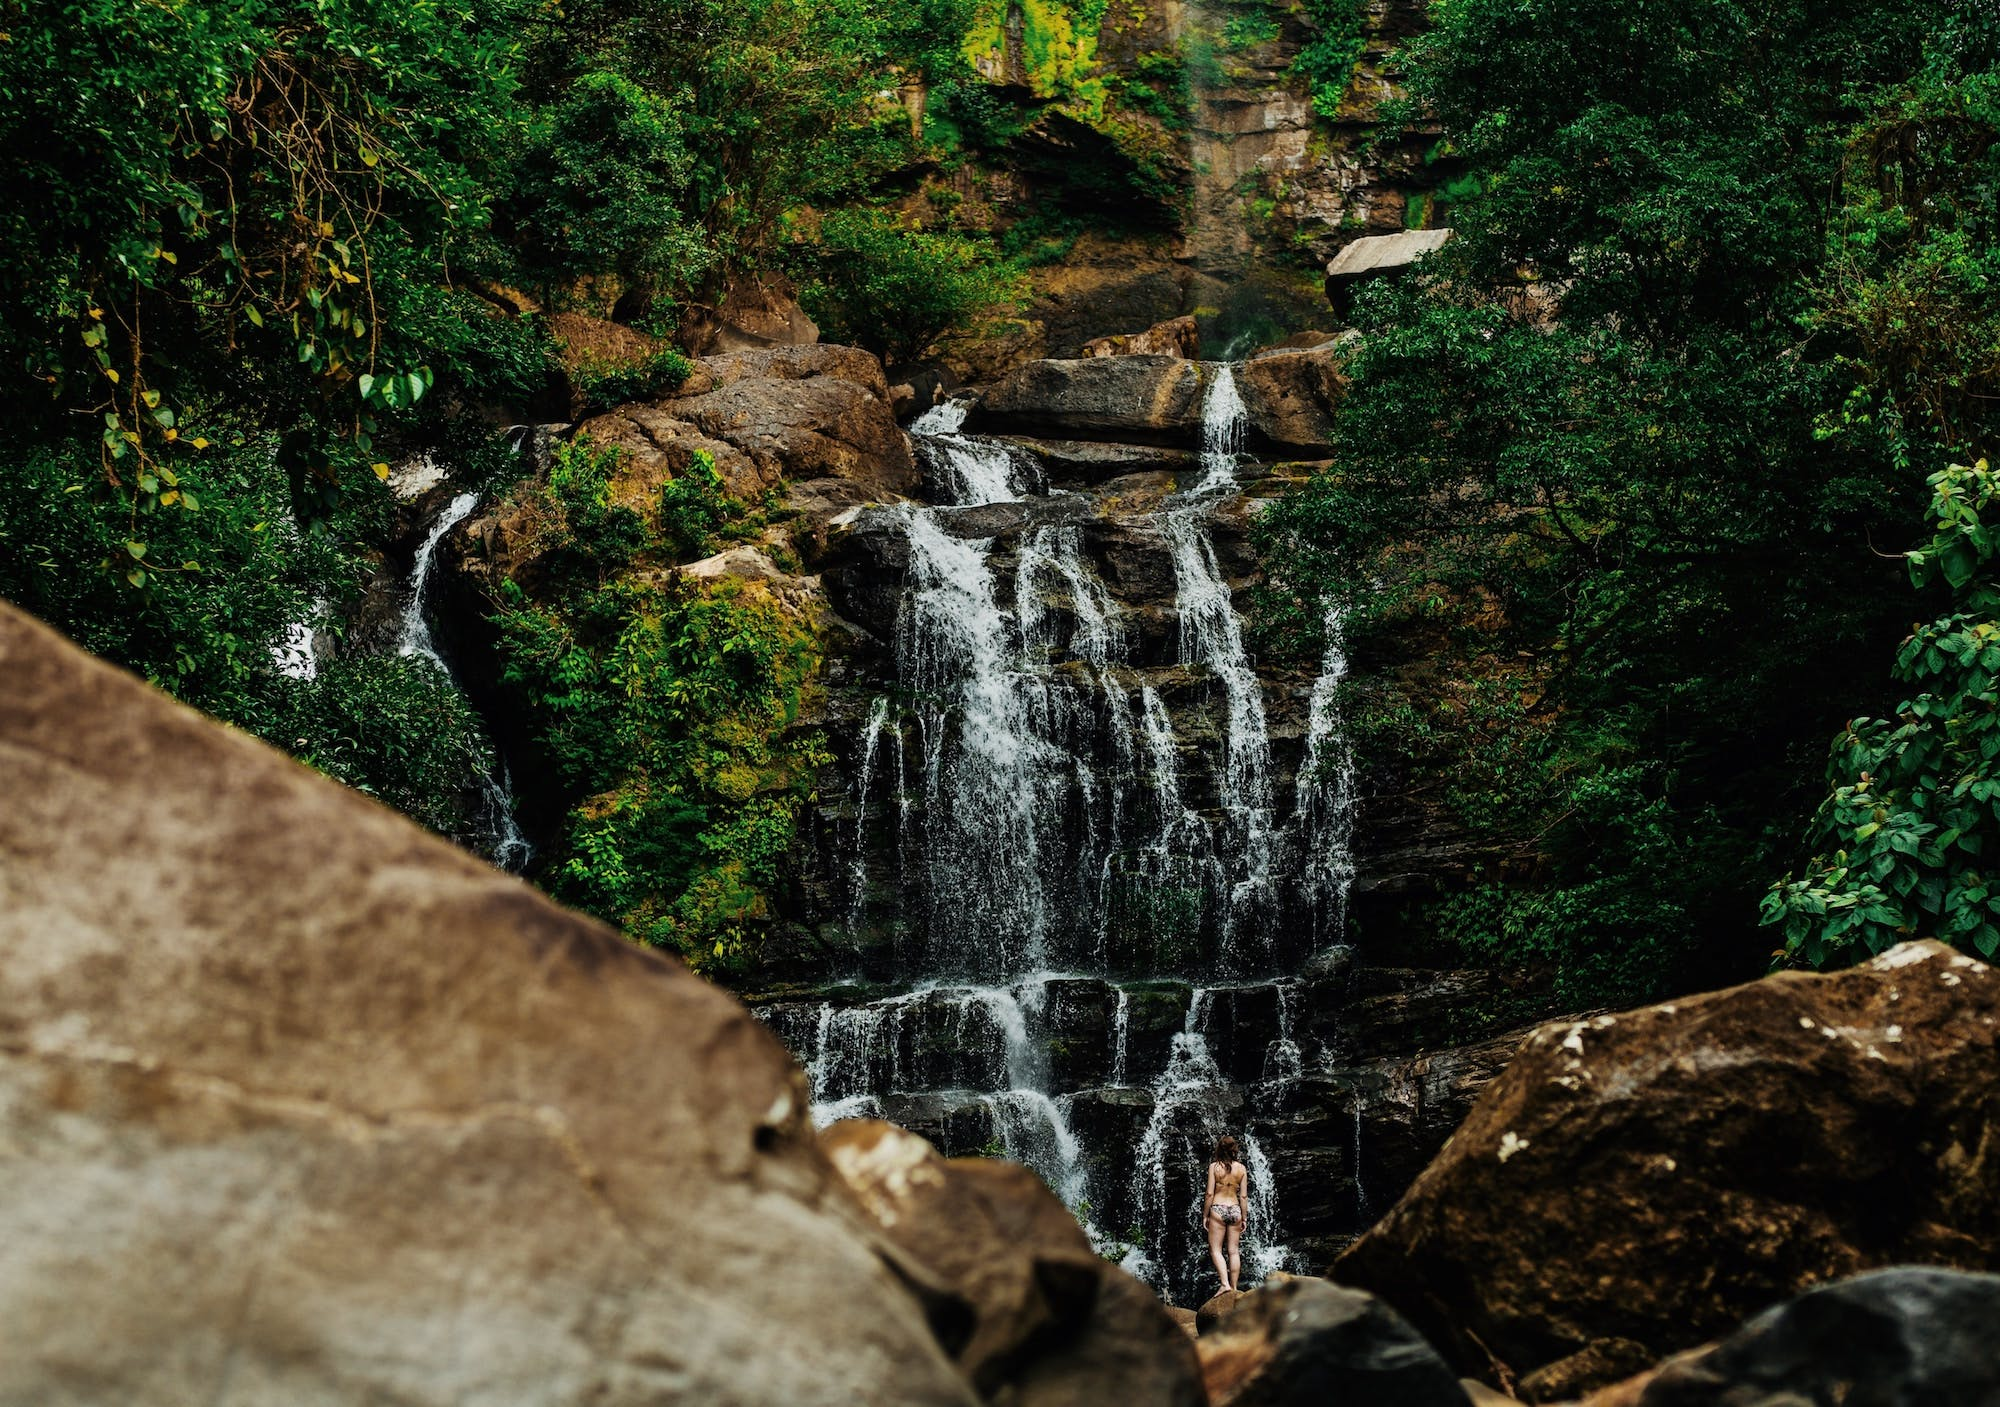 Woman at the bottom of a waterfall surrounded by greenery